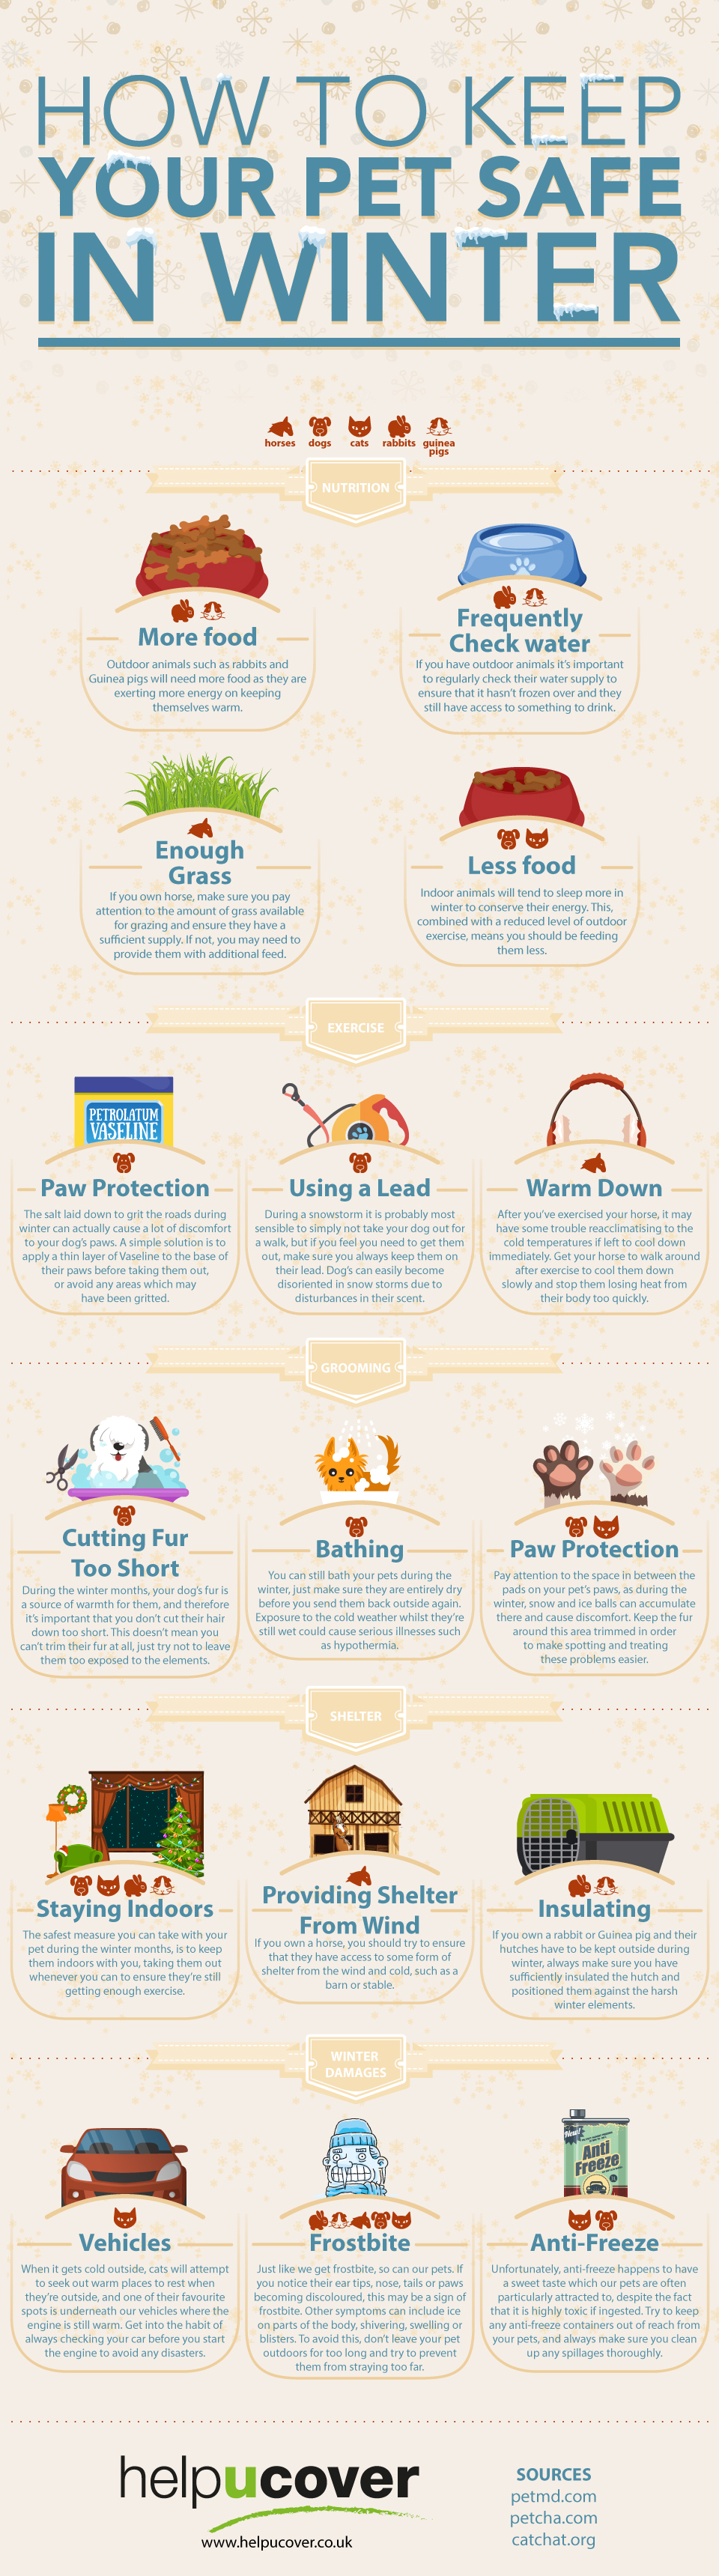 how-to-keep-your-pet-safe-in-winter-large